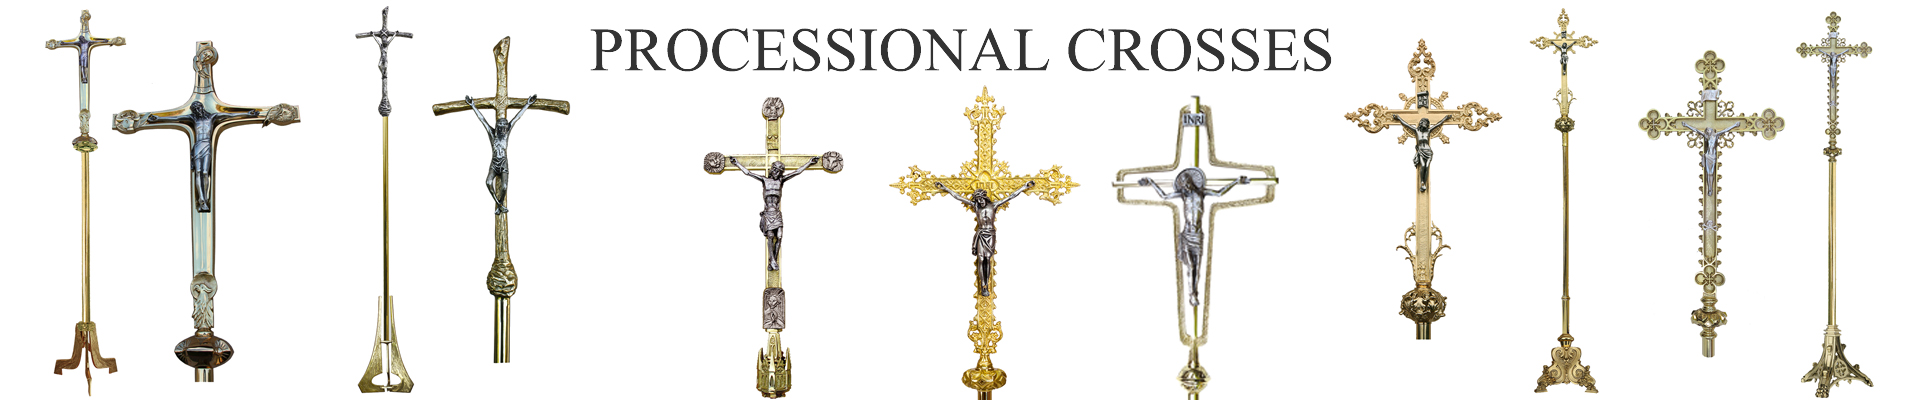 Processional crosses